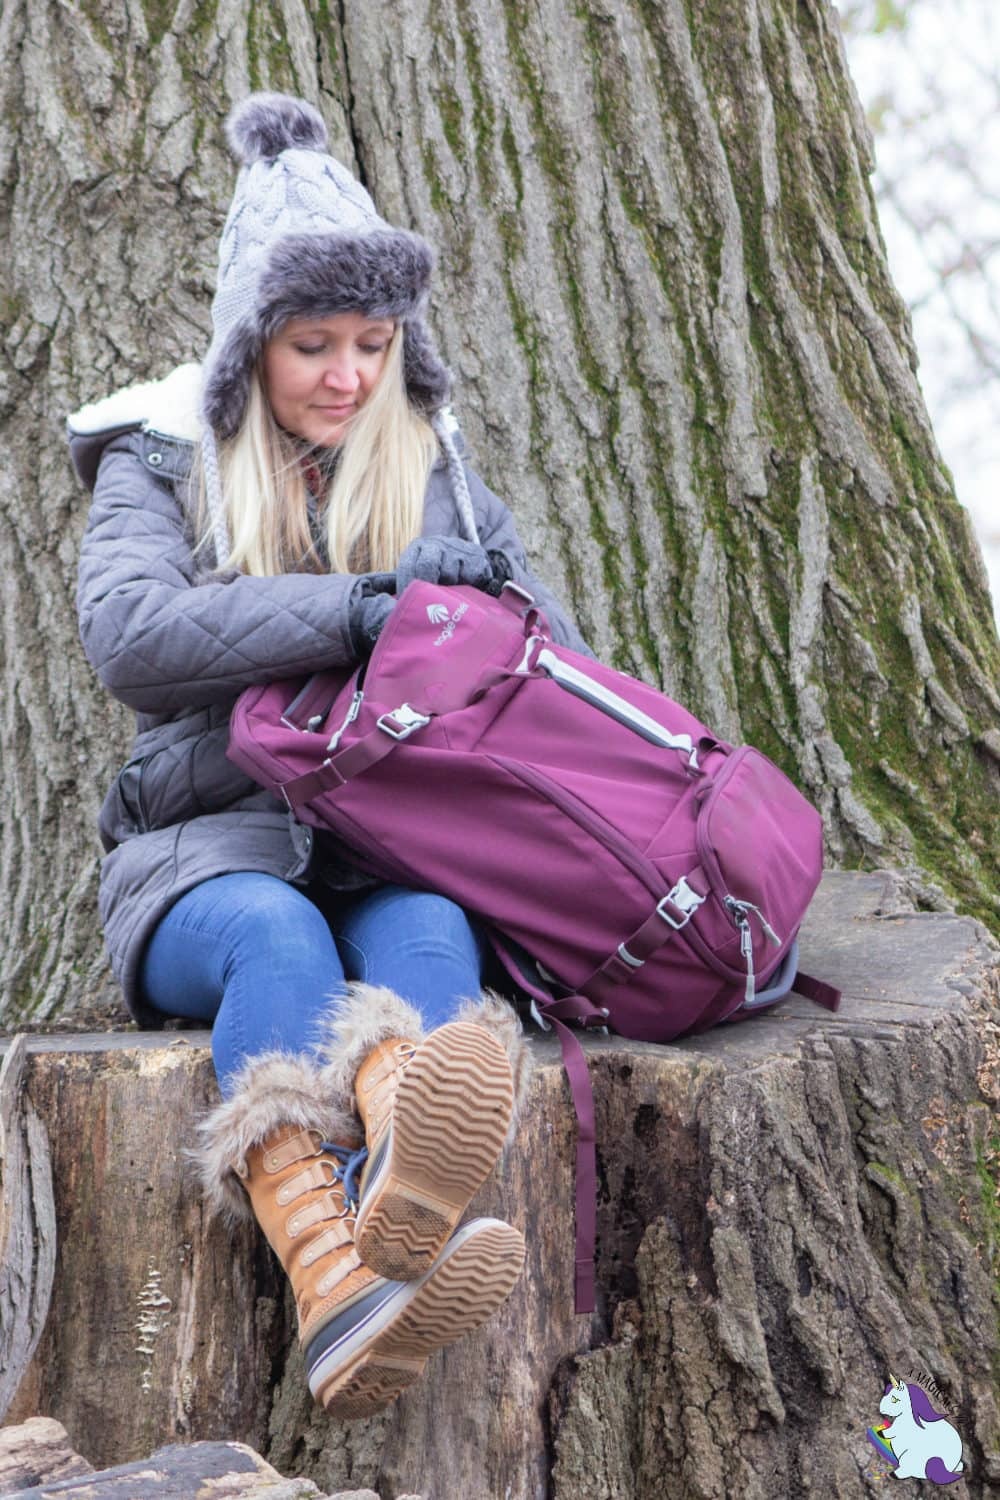 Shelley VanWitzenburg sitting on large tree stump with plum backpack